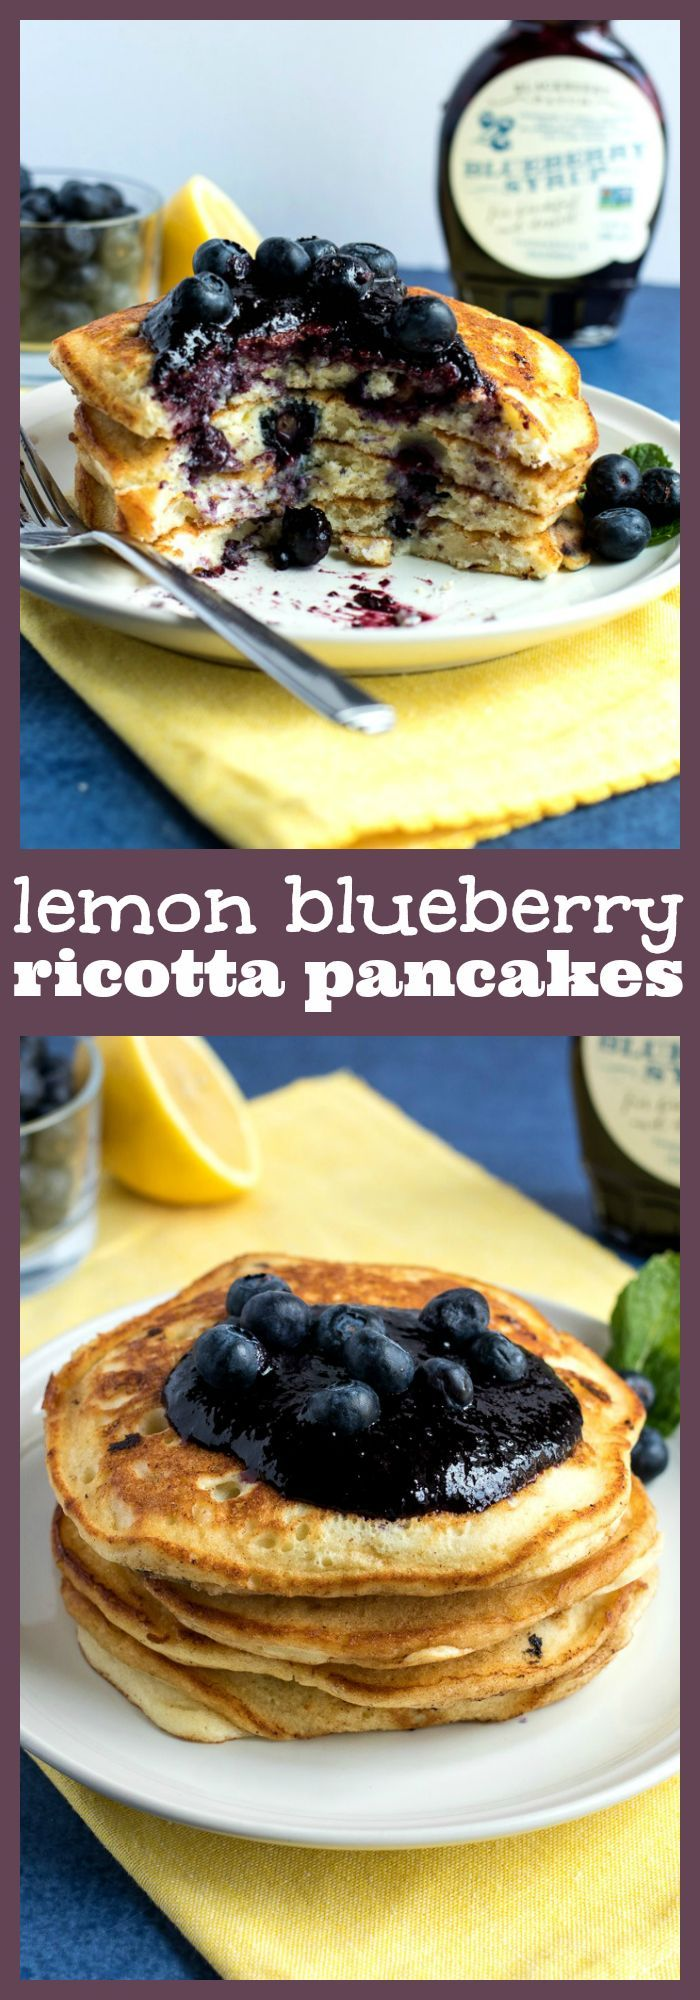 Lemon Blueberry Ricotta Pancakes – Homemade pancakes are given the gourmet treatment with the addition of fresh lemon zest, blueberries, and creamy ricotta cheese. Served with blueberry syrup for an added punch of flavor. #recipe #brunch #pancakes #breakfast #blueberry #lemon #Easter #mothersday